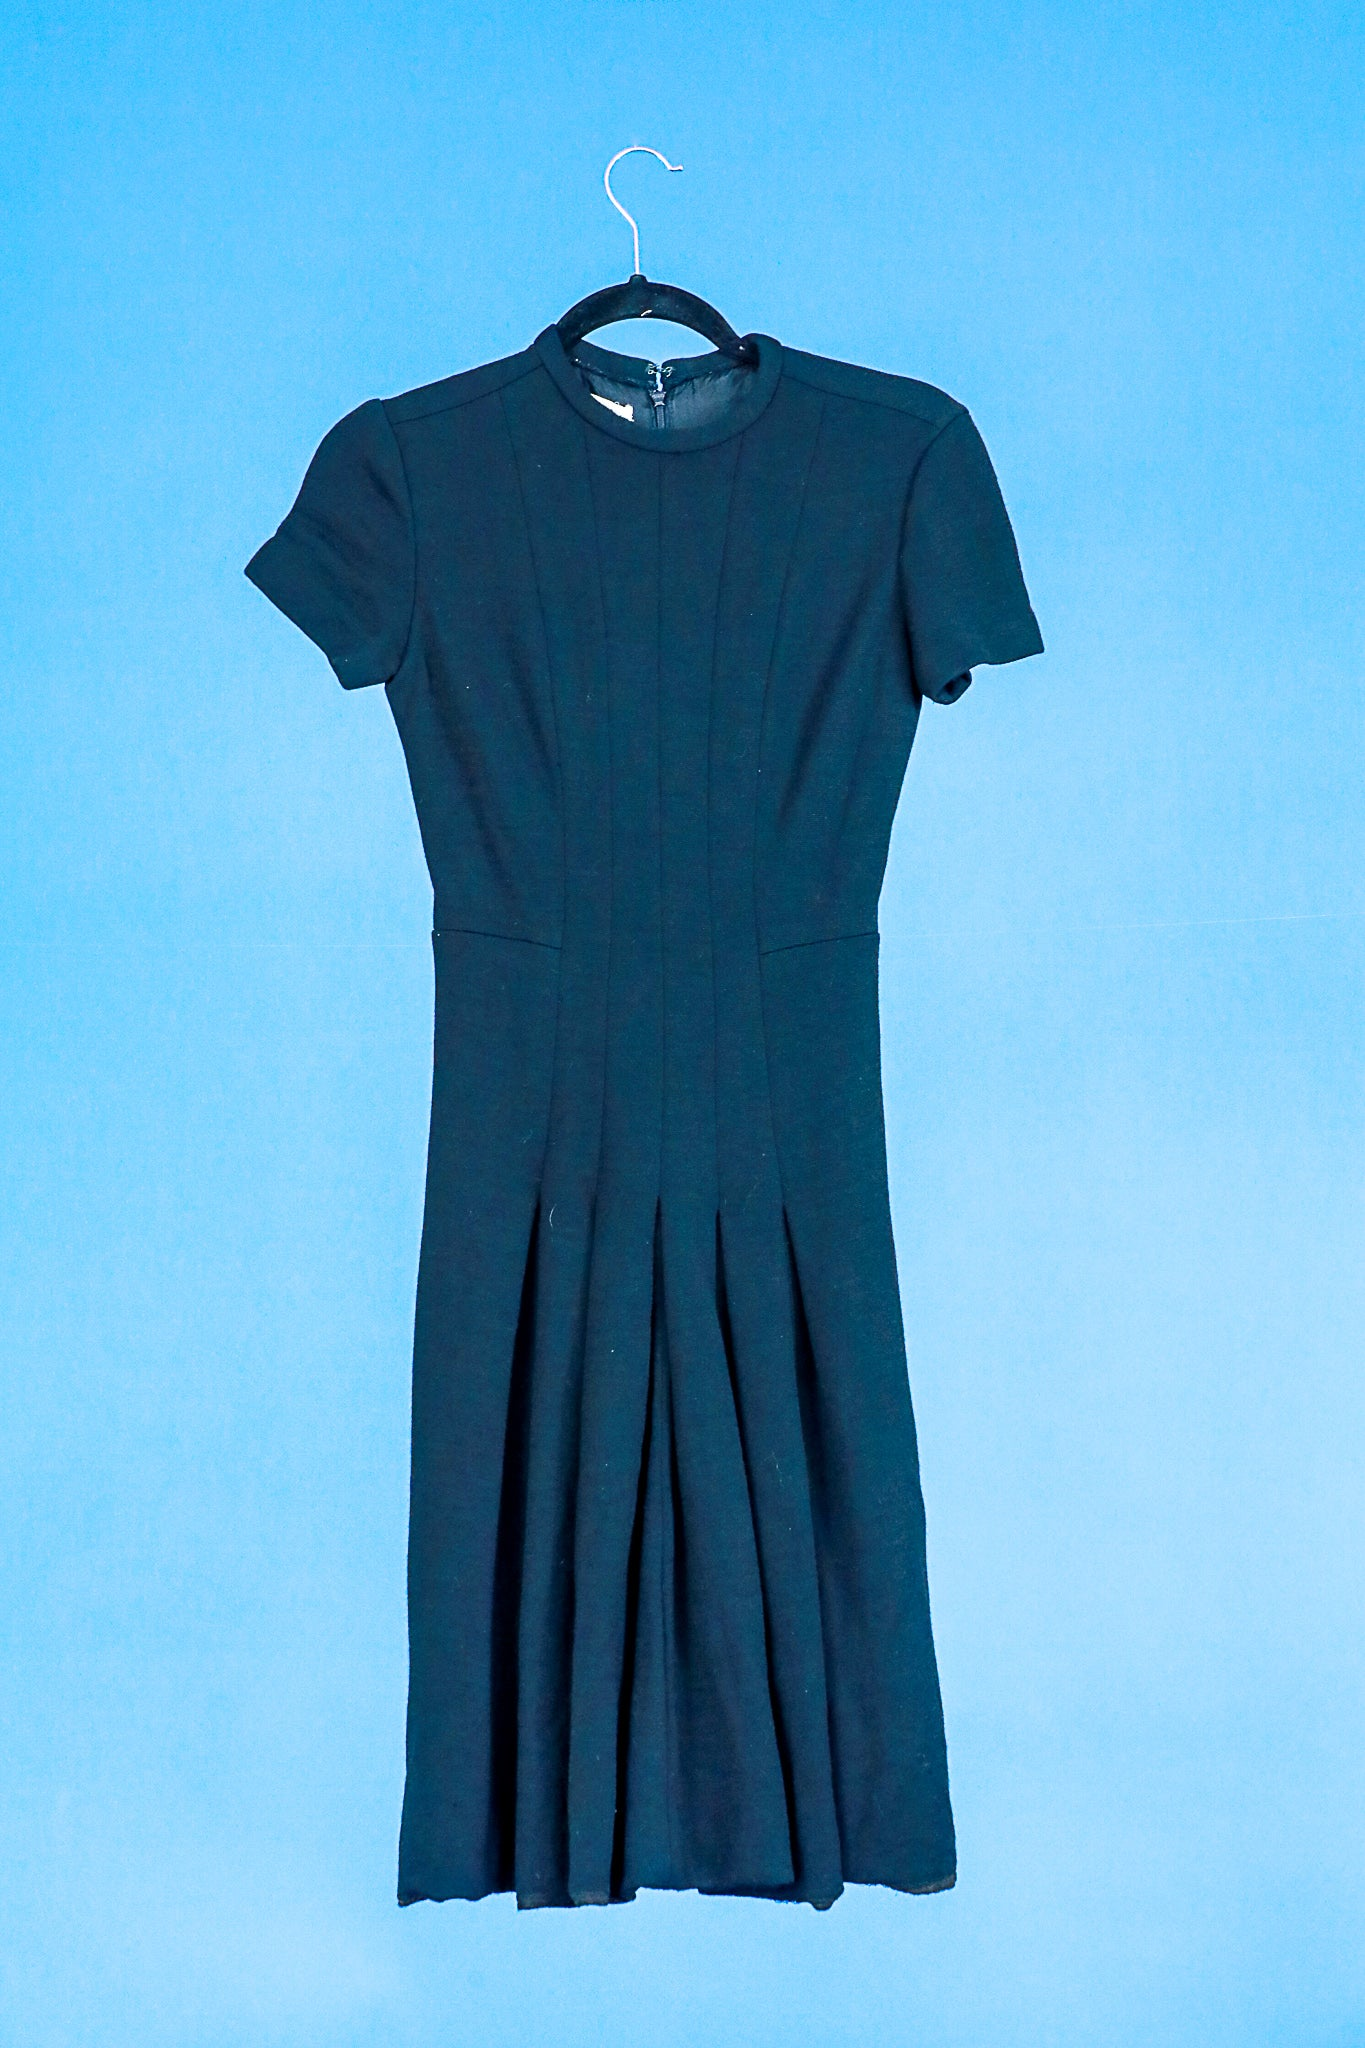 Elizabeth Arden Black Wool Dress